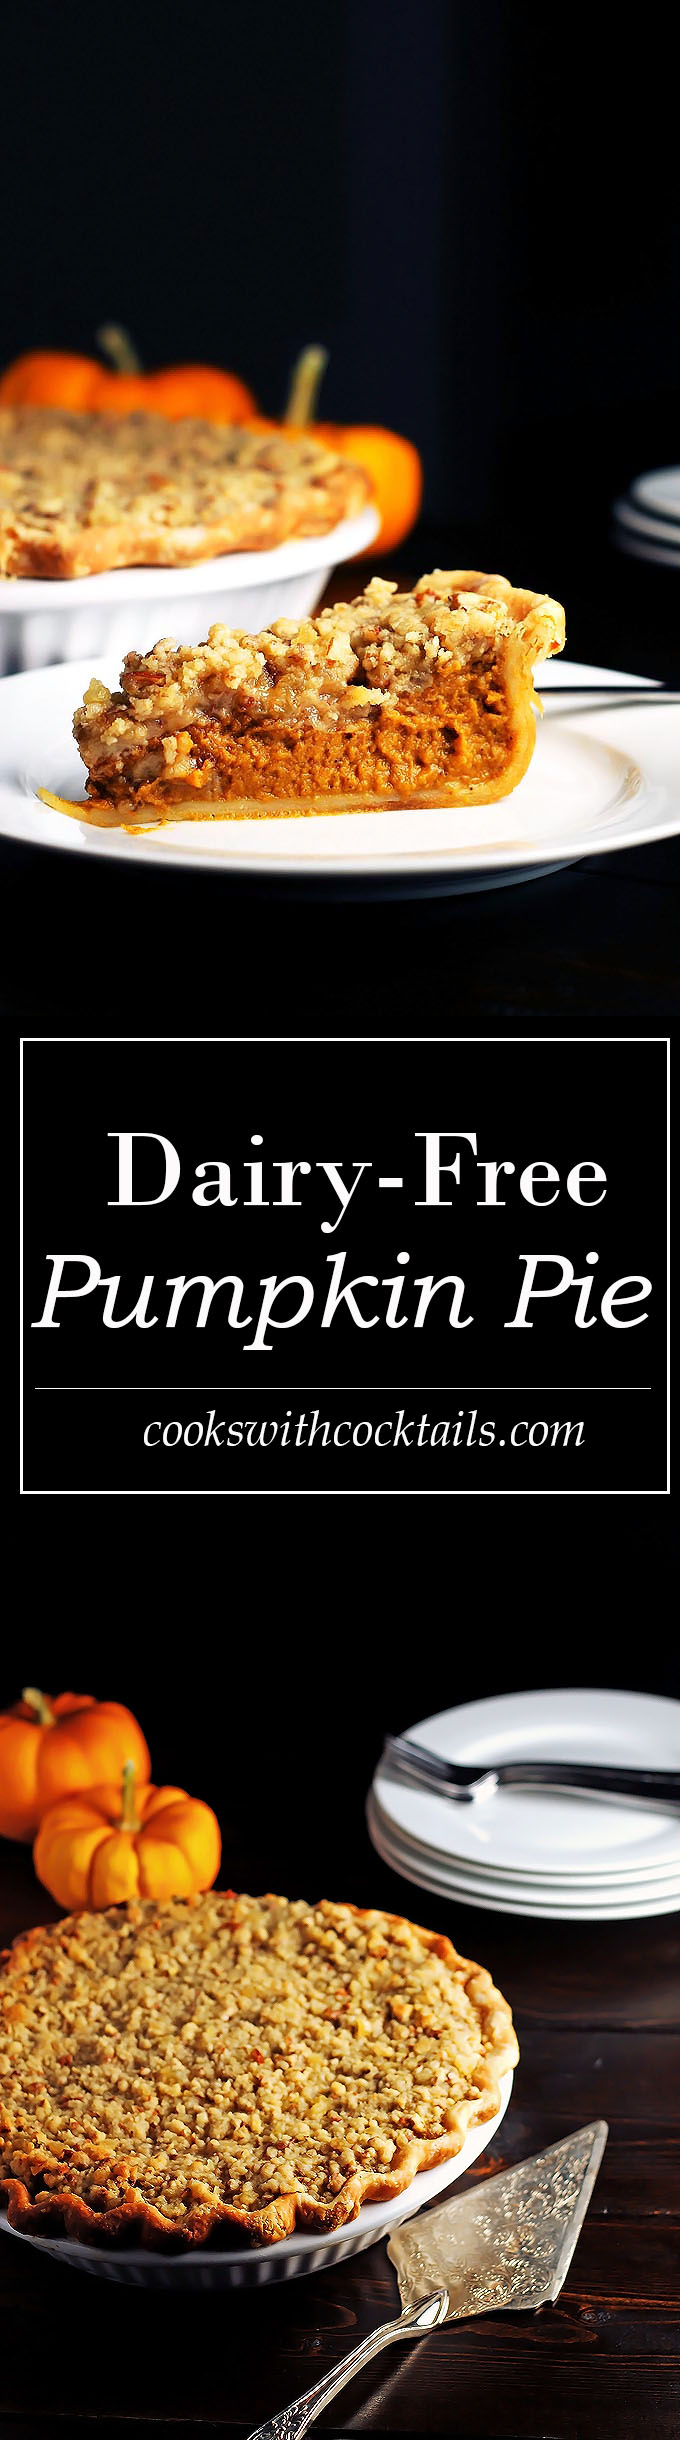 Perfect Pumpkin Spiced Pie with Streusel Topping